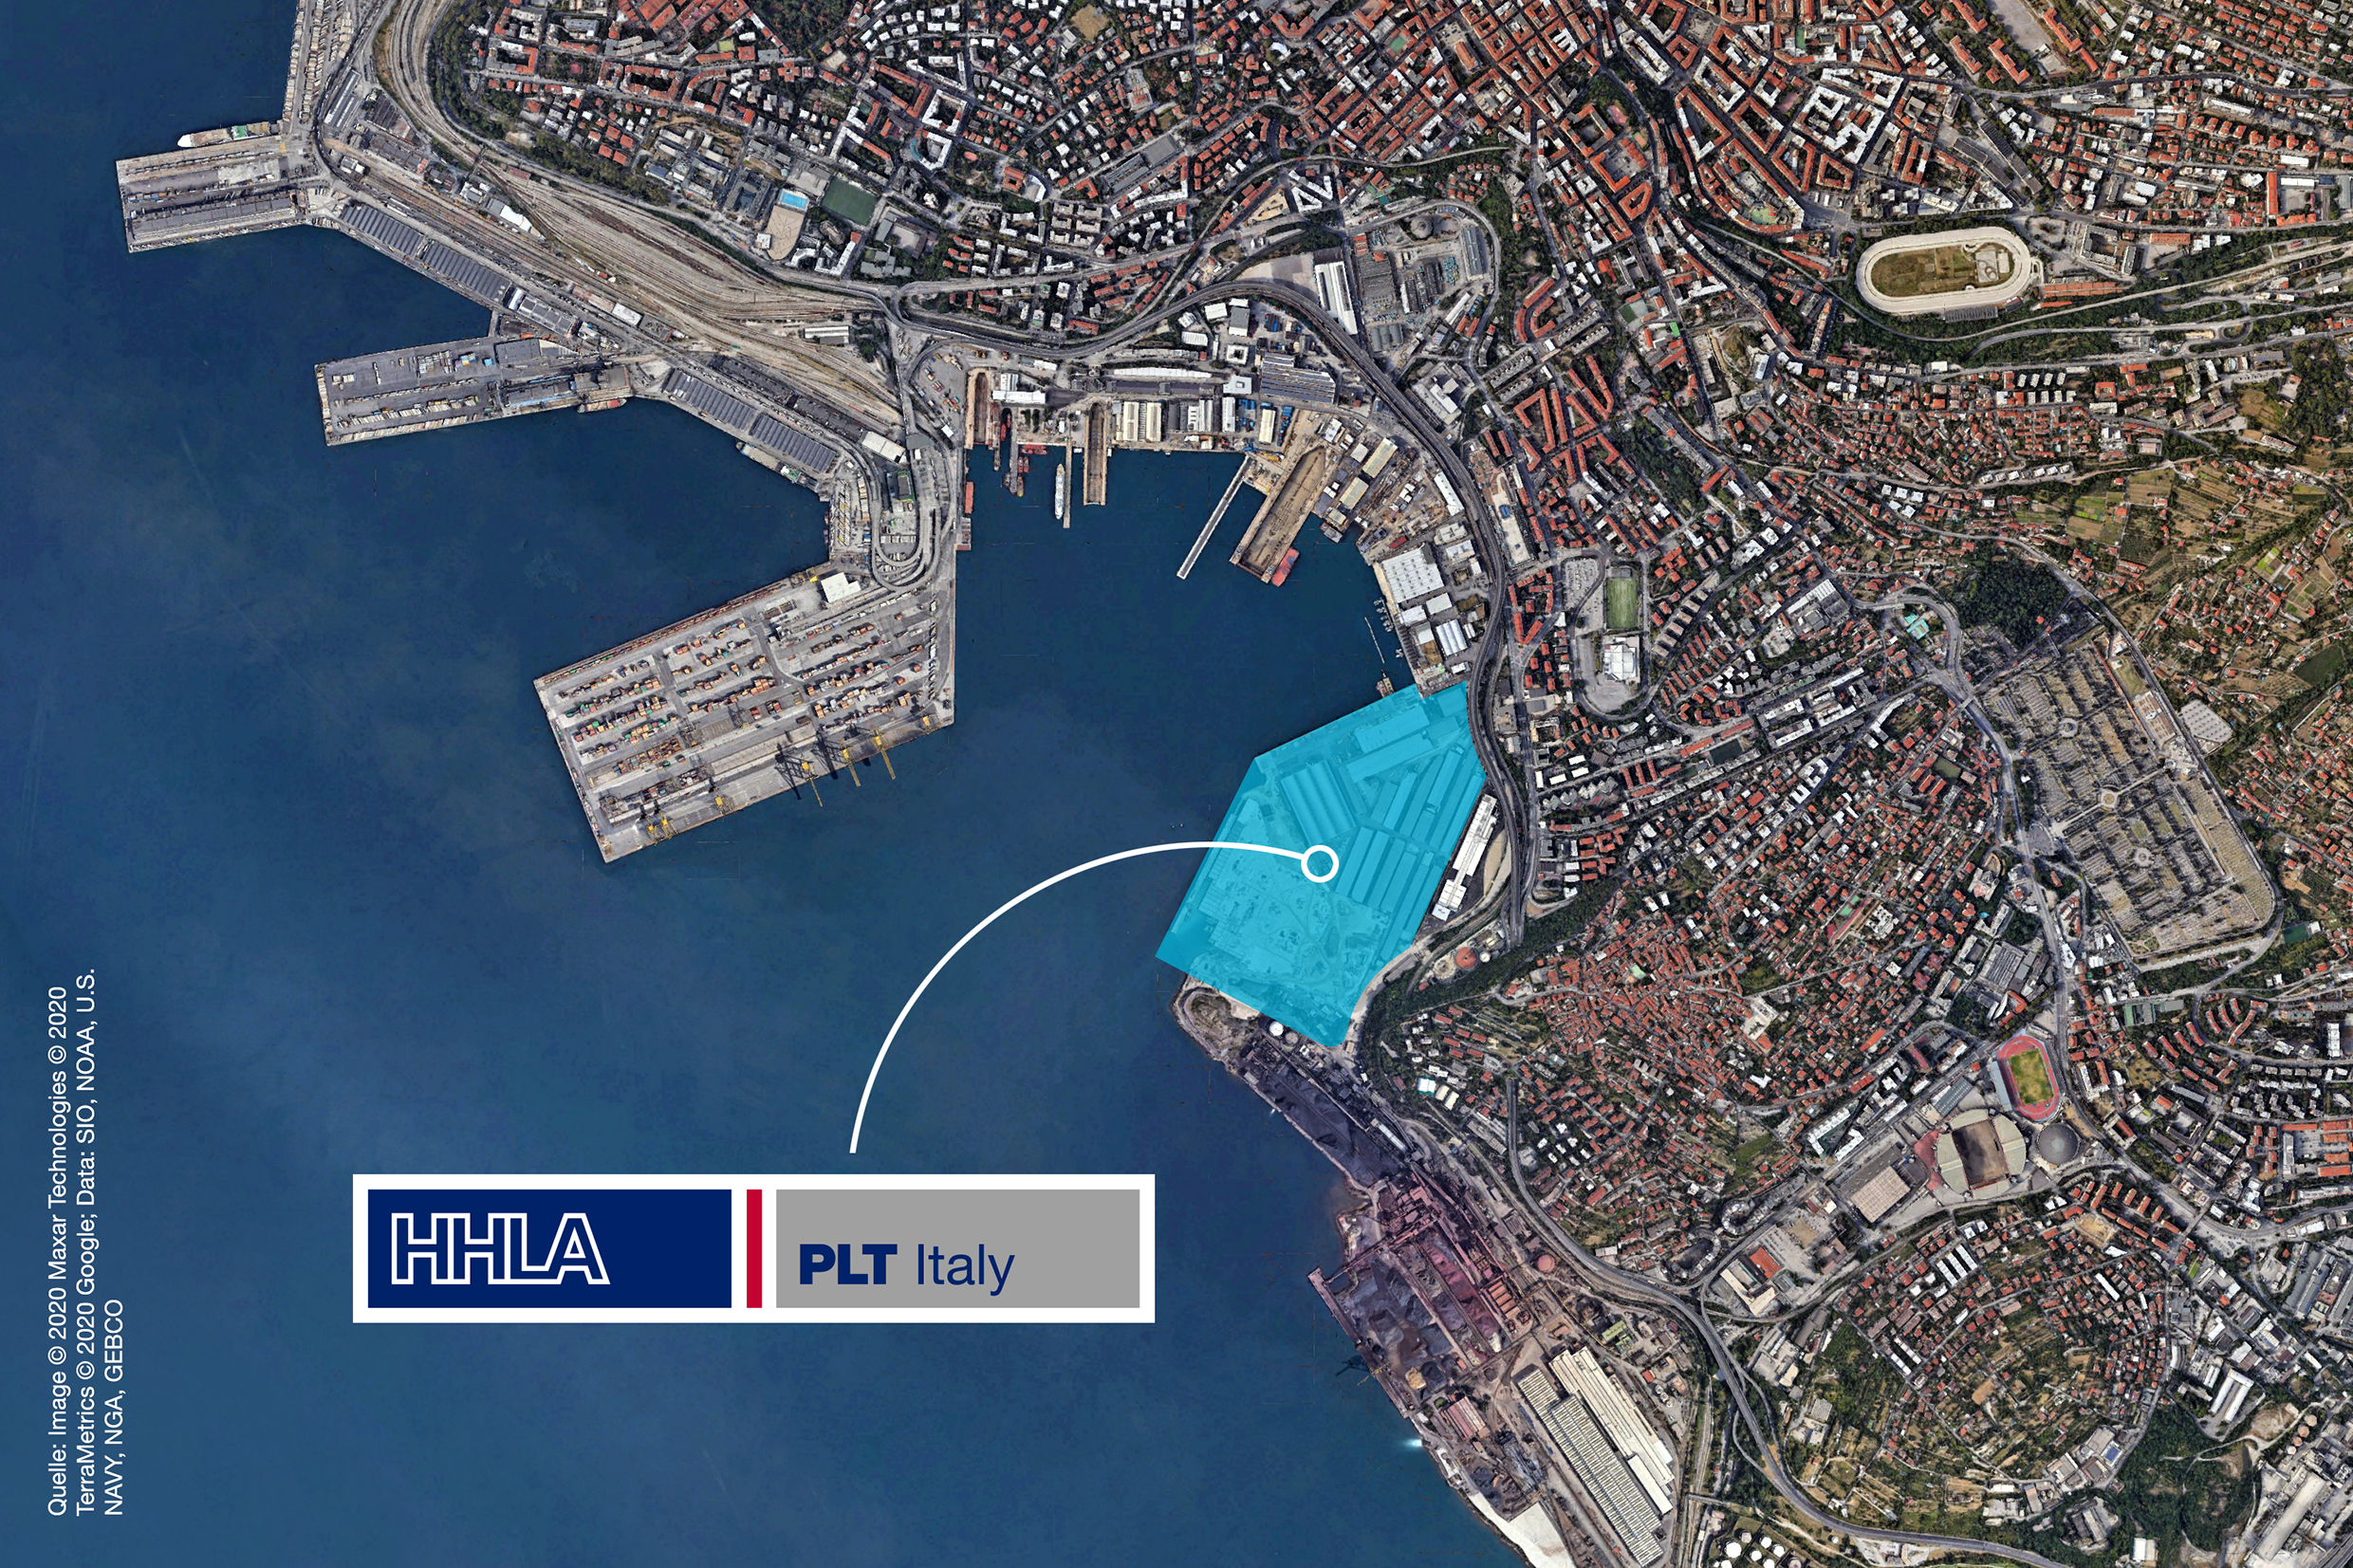 Map of the area of the Port of Triest and the new HHLA PLT Italy terminal